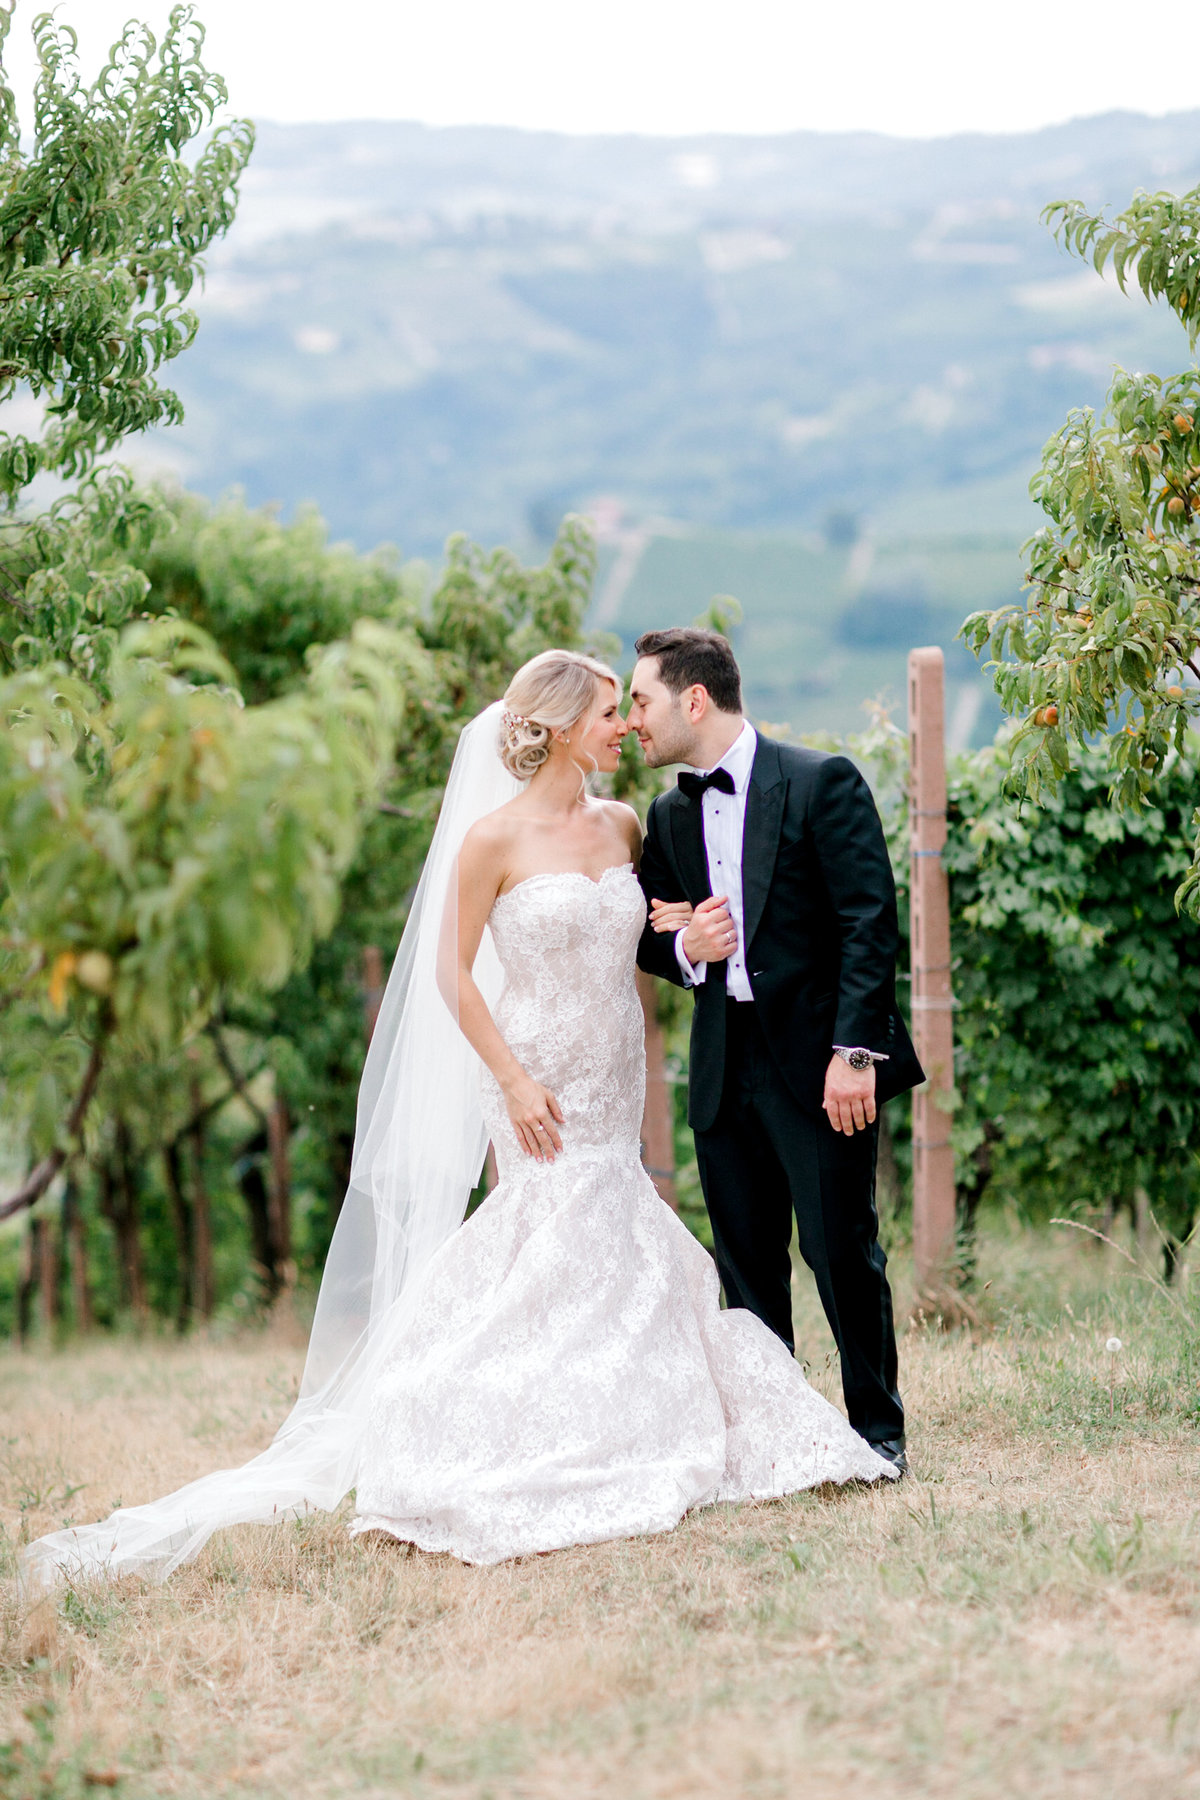 Destination-Vineyard-Italian-Wedding-New-York-Photographer-Jessica-Haley-Photo-52